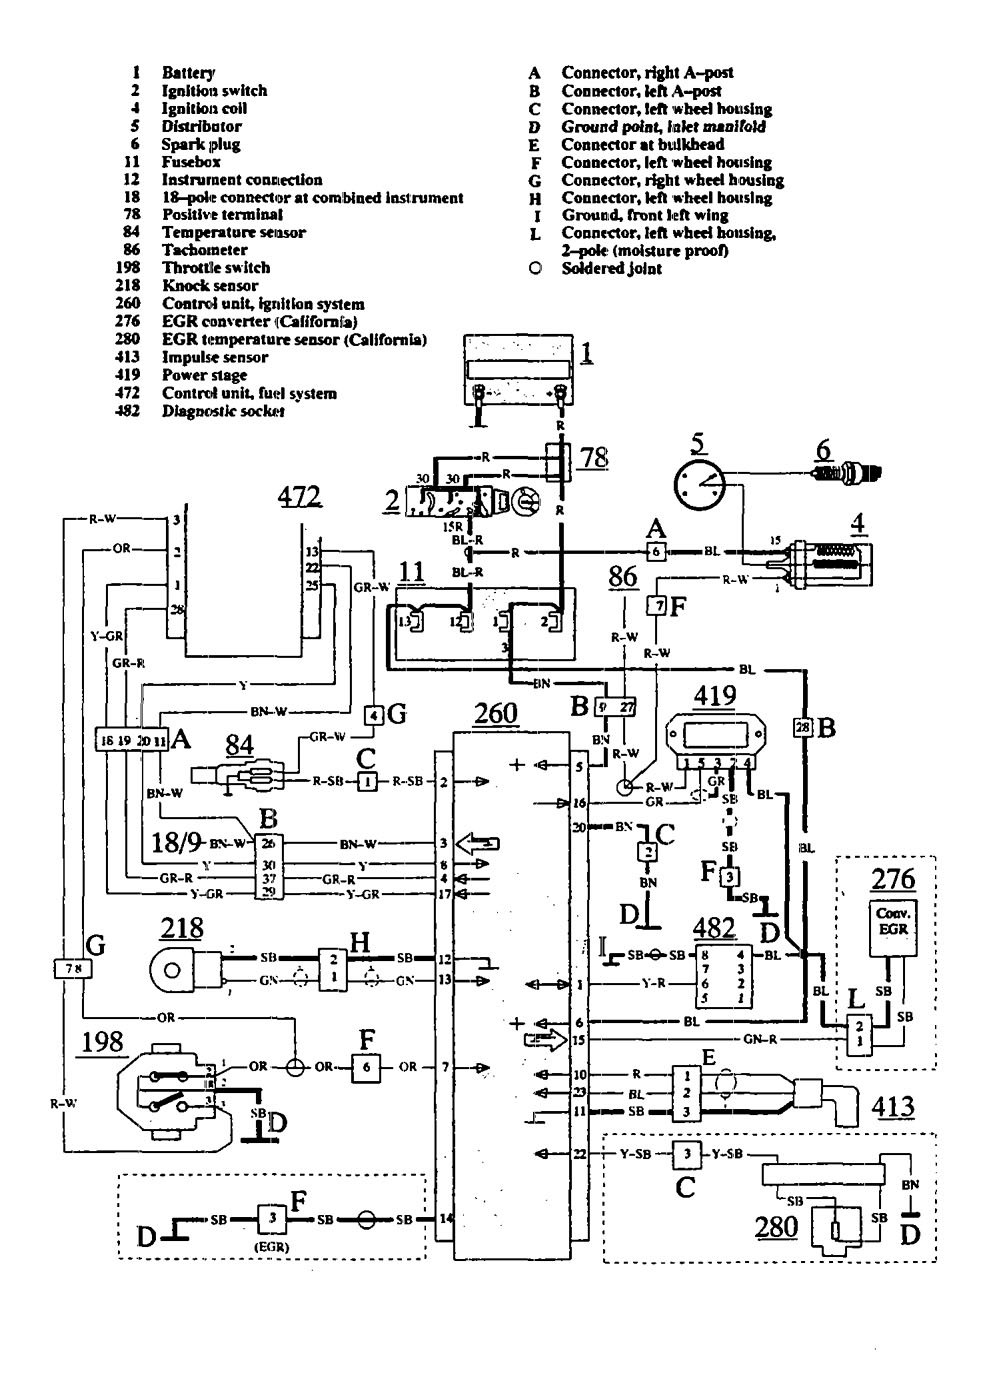 Volvo Wiring Diagram Ignition V on Volvo 940 Engine Diagram